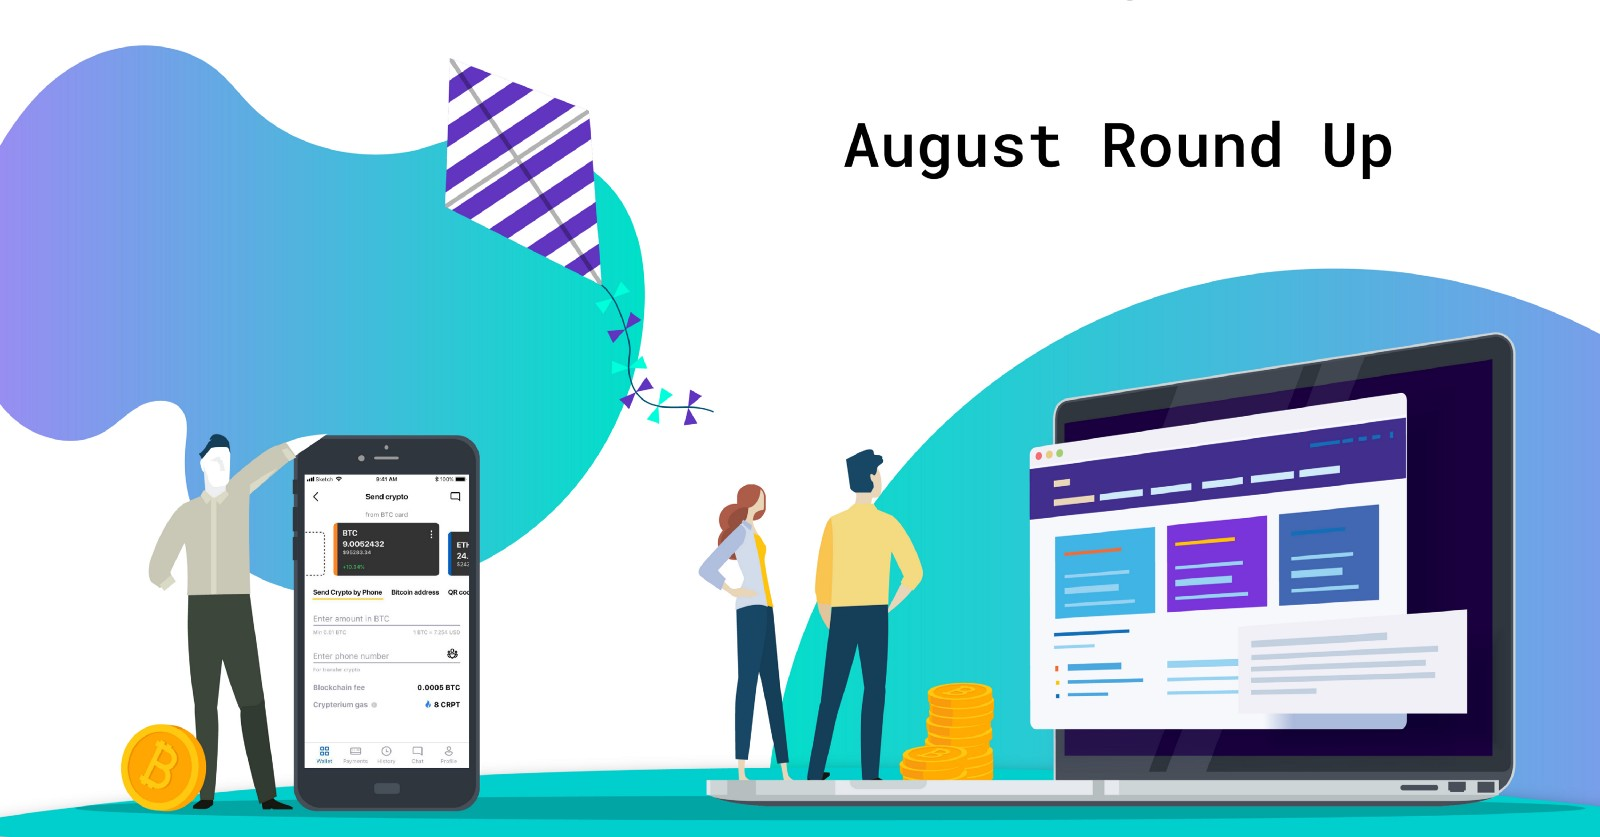 /crypterium-roundup-for-august-new-killer-app-features-in-action-acba4eab3487 feature image